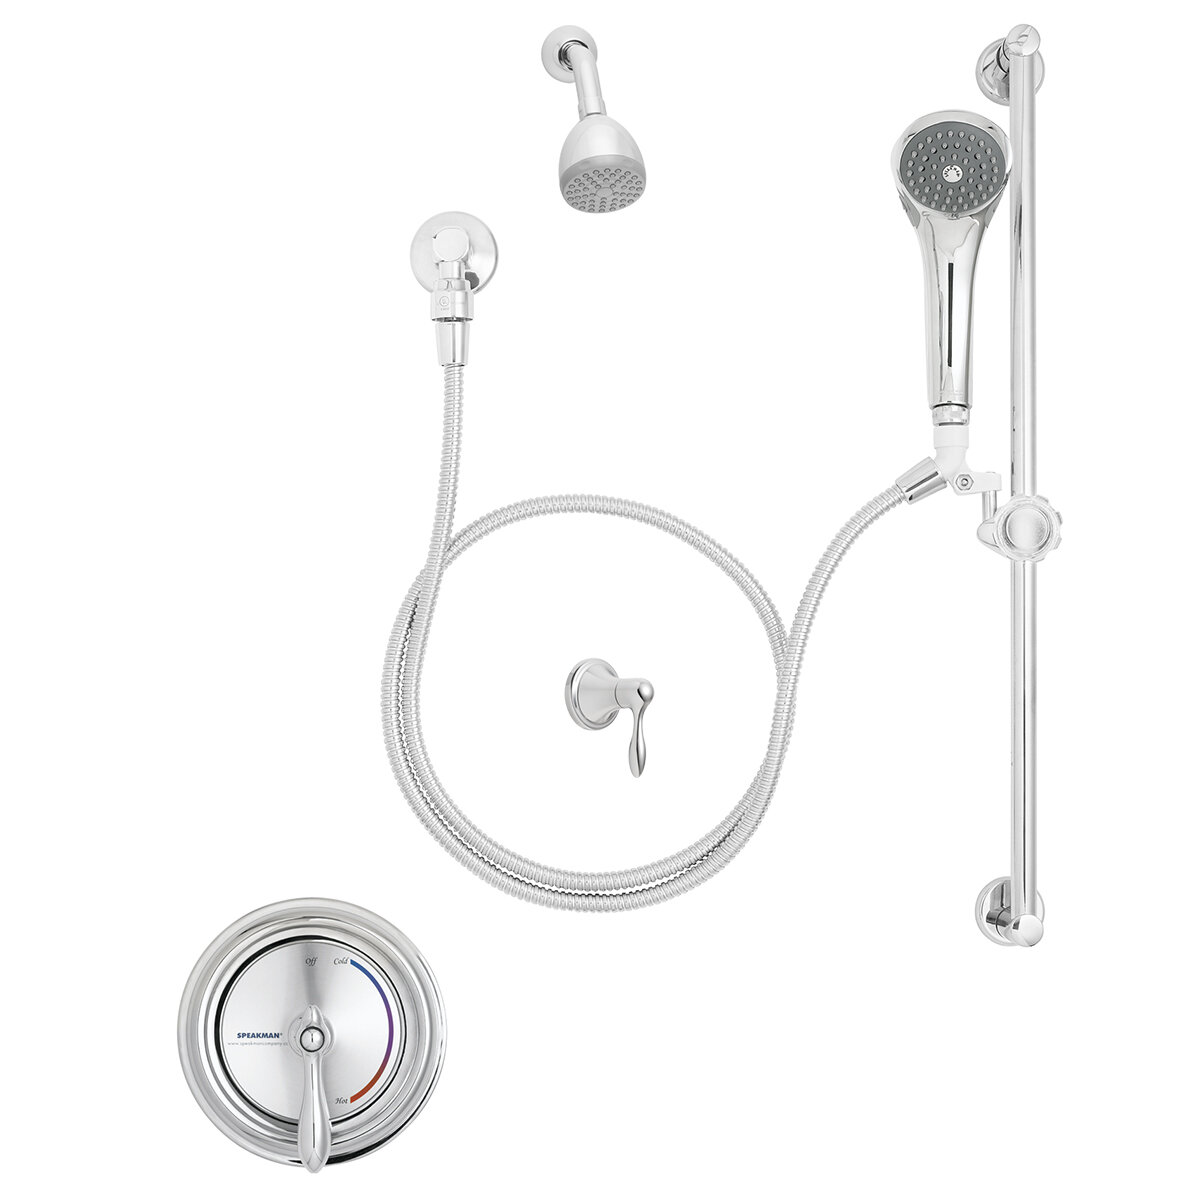 Speakman Sentinel Mark Ii Thermostatic Tub And Shower Faucet With Rough In Valve Trim And Diverter Wayfair